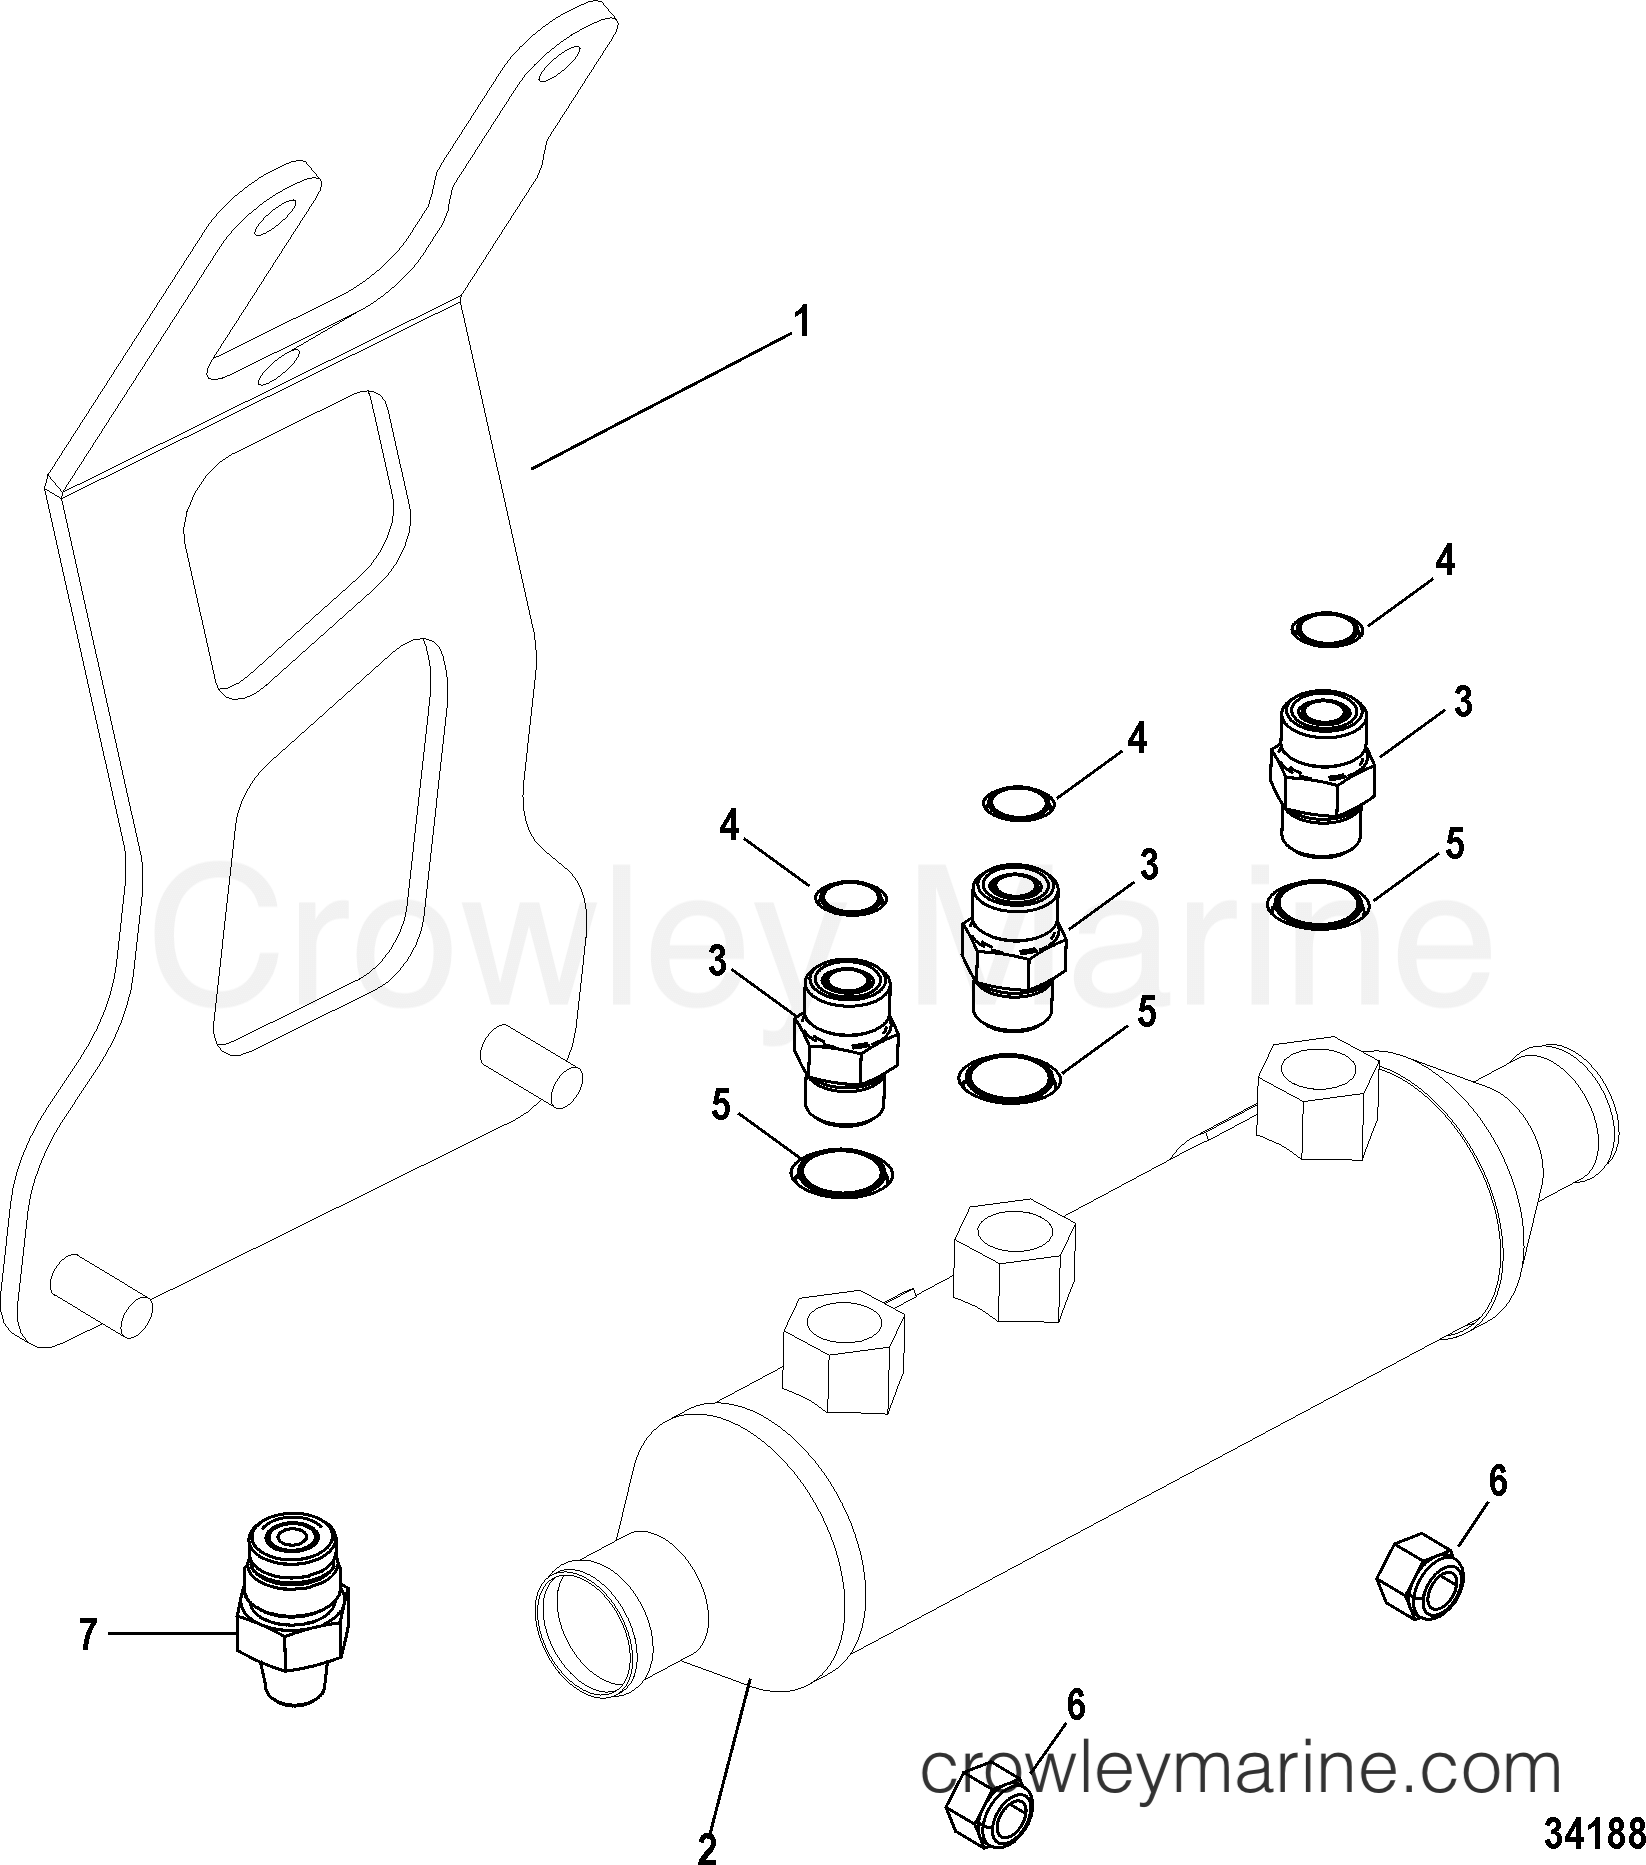 Mercruiser 350 Oil Cooler Diagram Trusted Wiring Diagrams Engine Axius Steering Components And Bracket Gen I 1998 454 Transmission